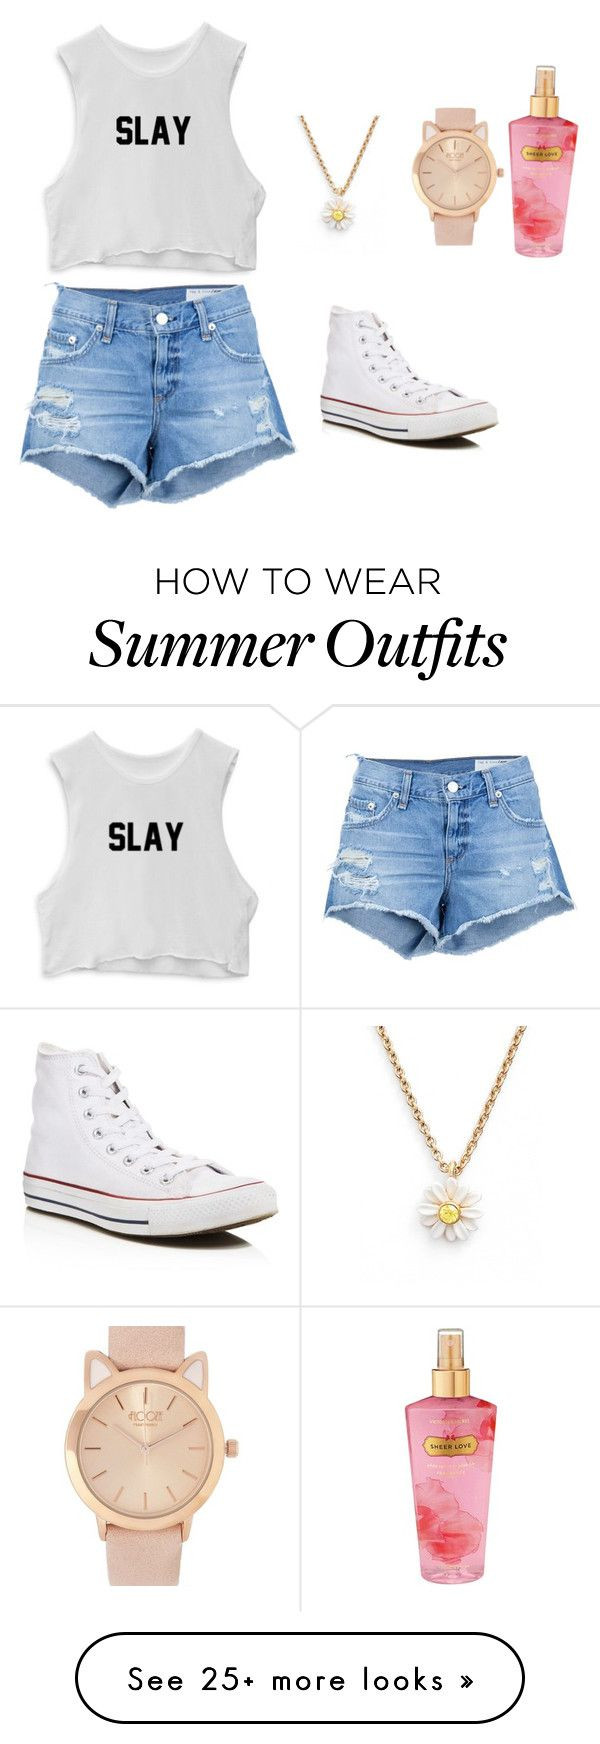 """""""Summer outfits"""" by bess-cram on Polyvore featuring rag & bone/JEAN, Converse, Victoria's Secret and Kate Spade"""